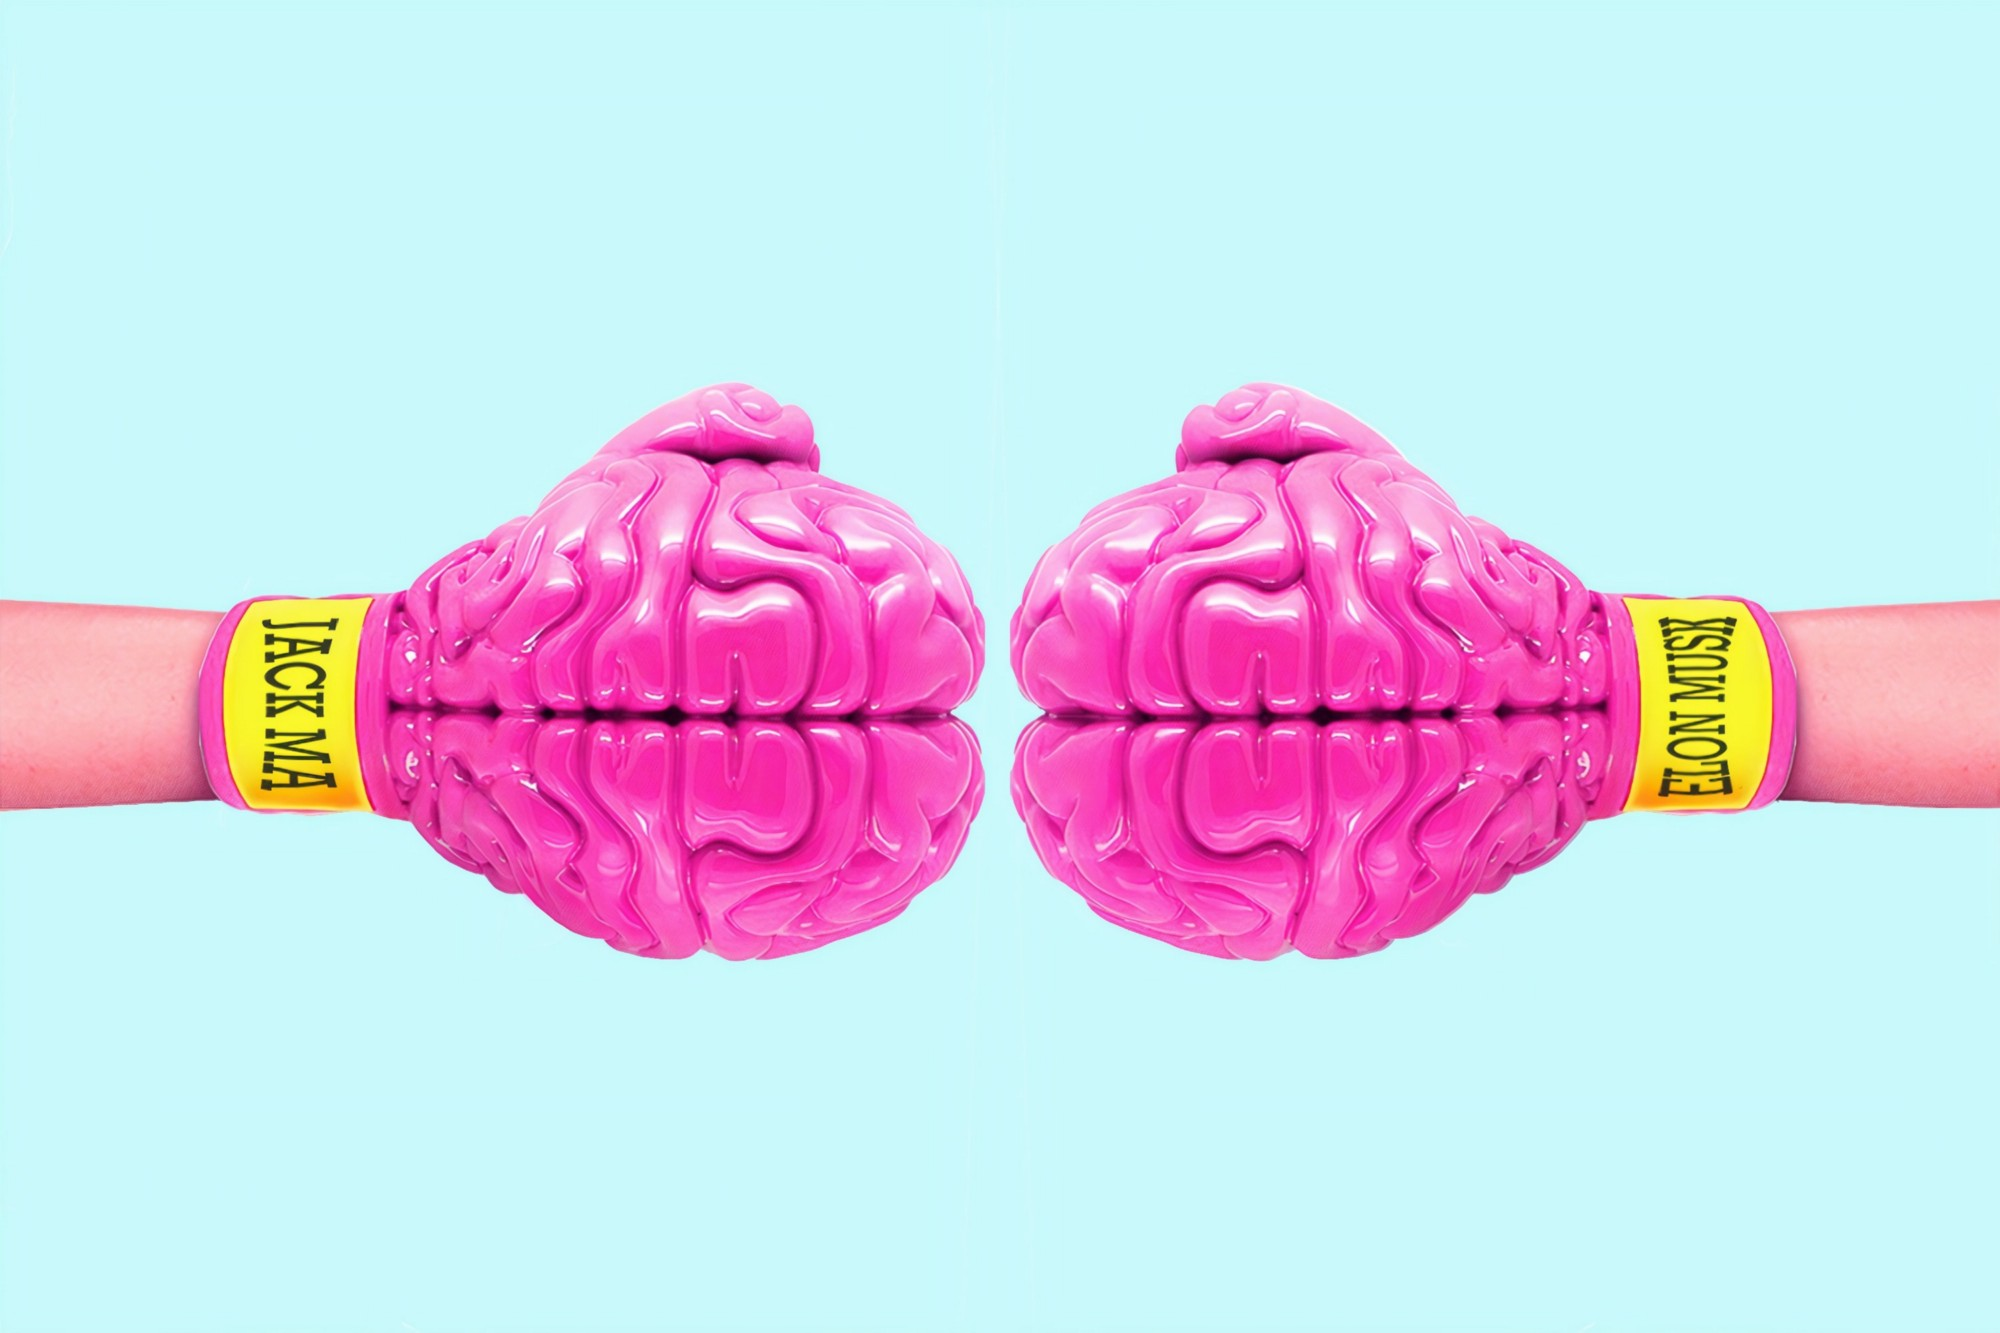 Two pink boxing gloves shaped as human brains.